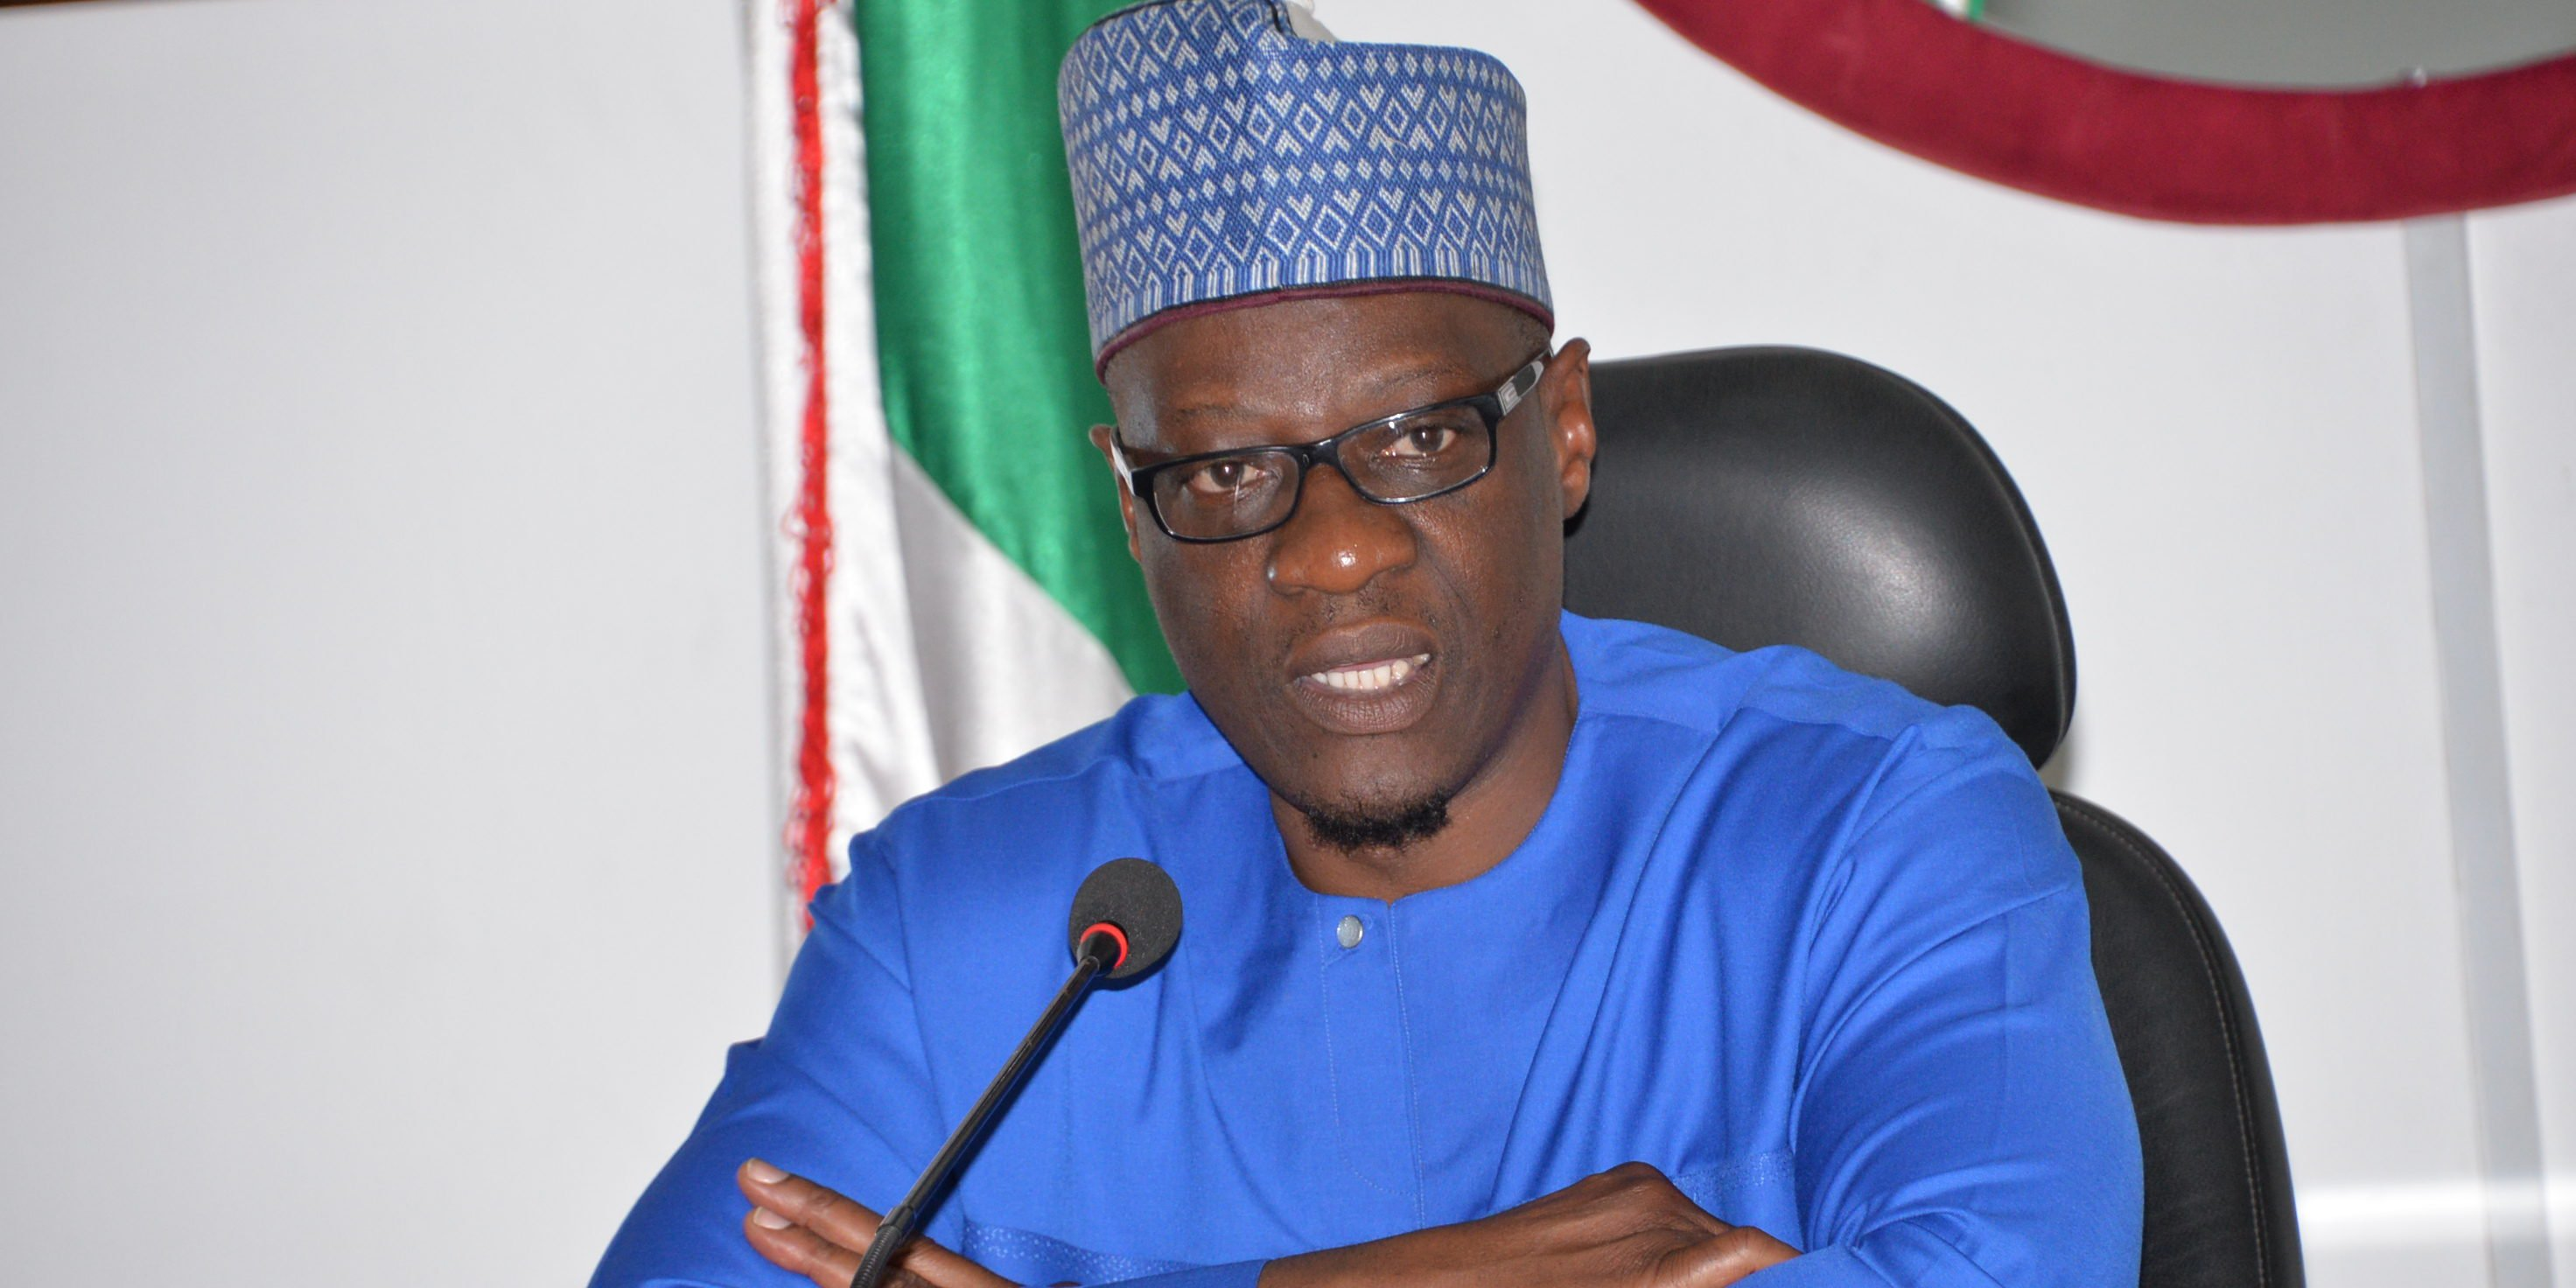 Kwara offers N5m for information on Offa bank robbers